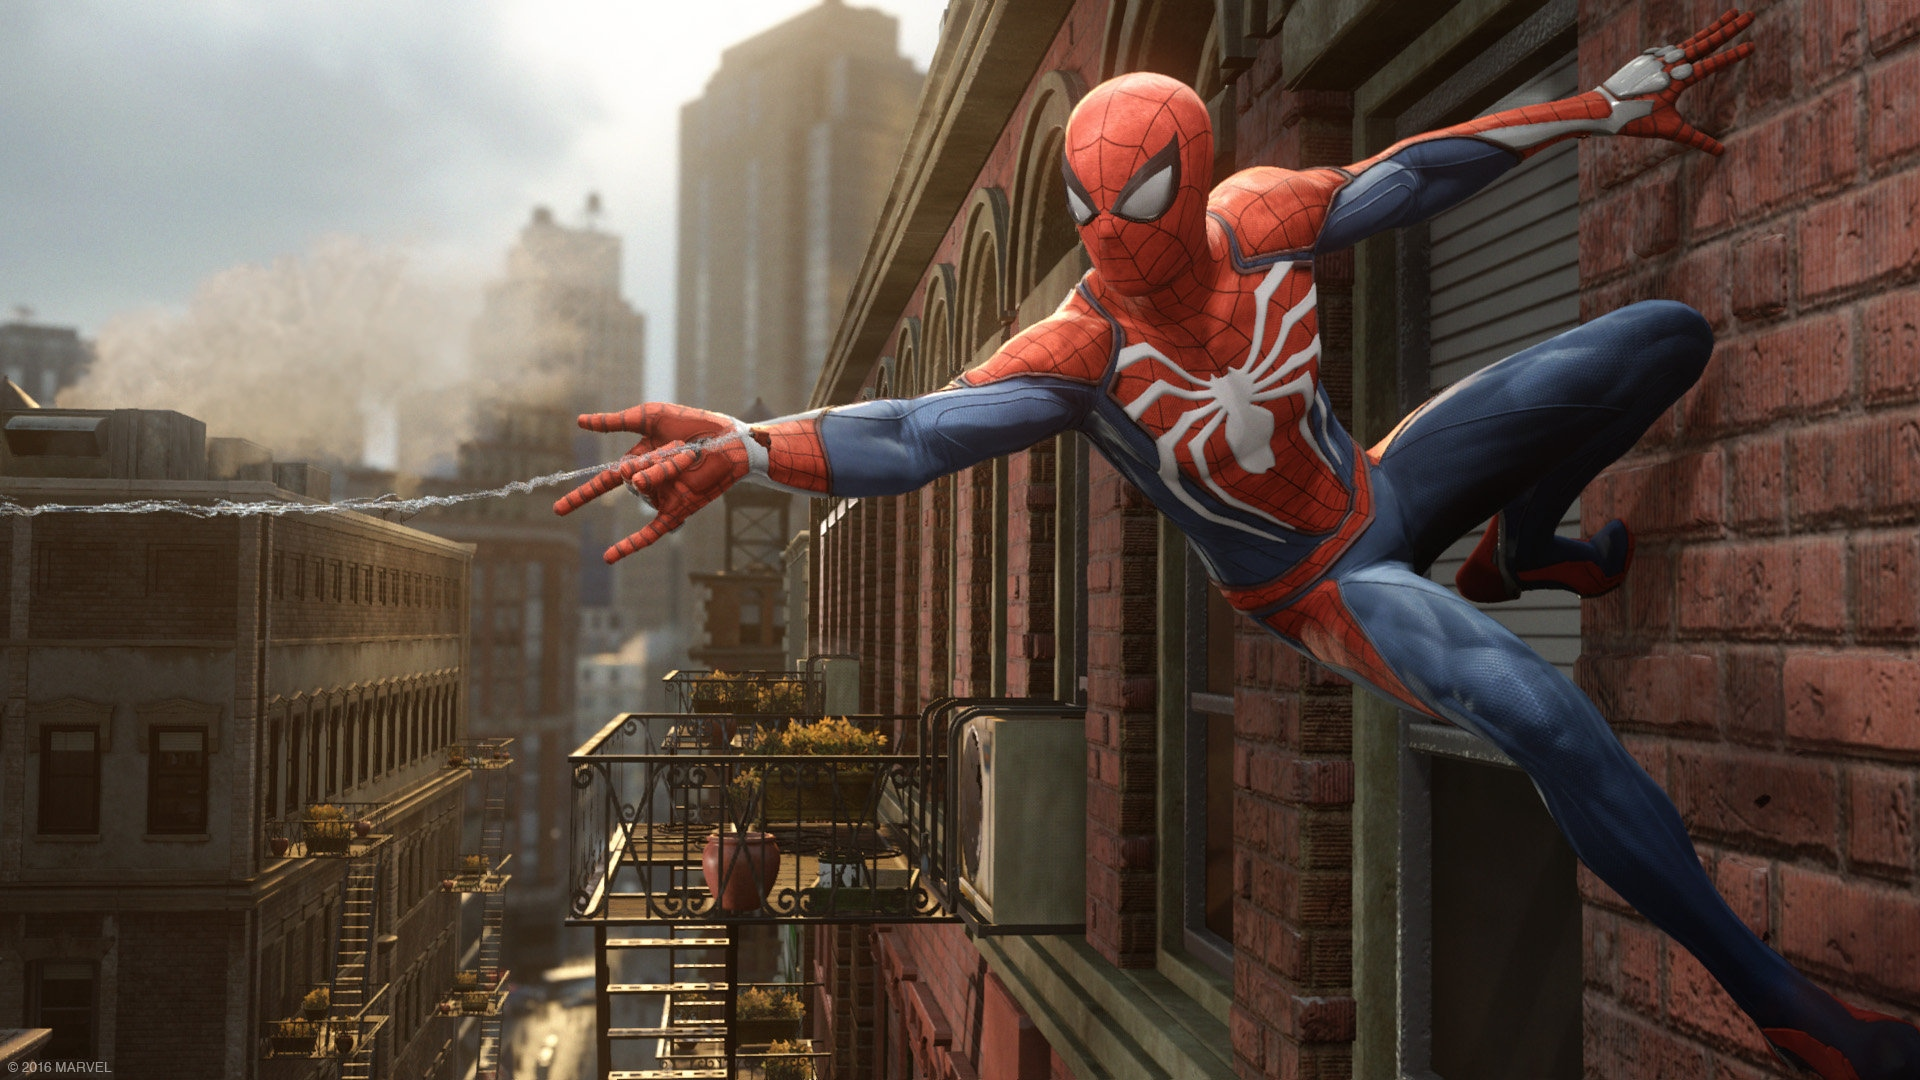 Spiderman Games New Spiderman Game Is Exclusive For Ps4 Feed4gamers